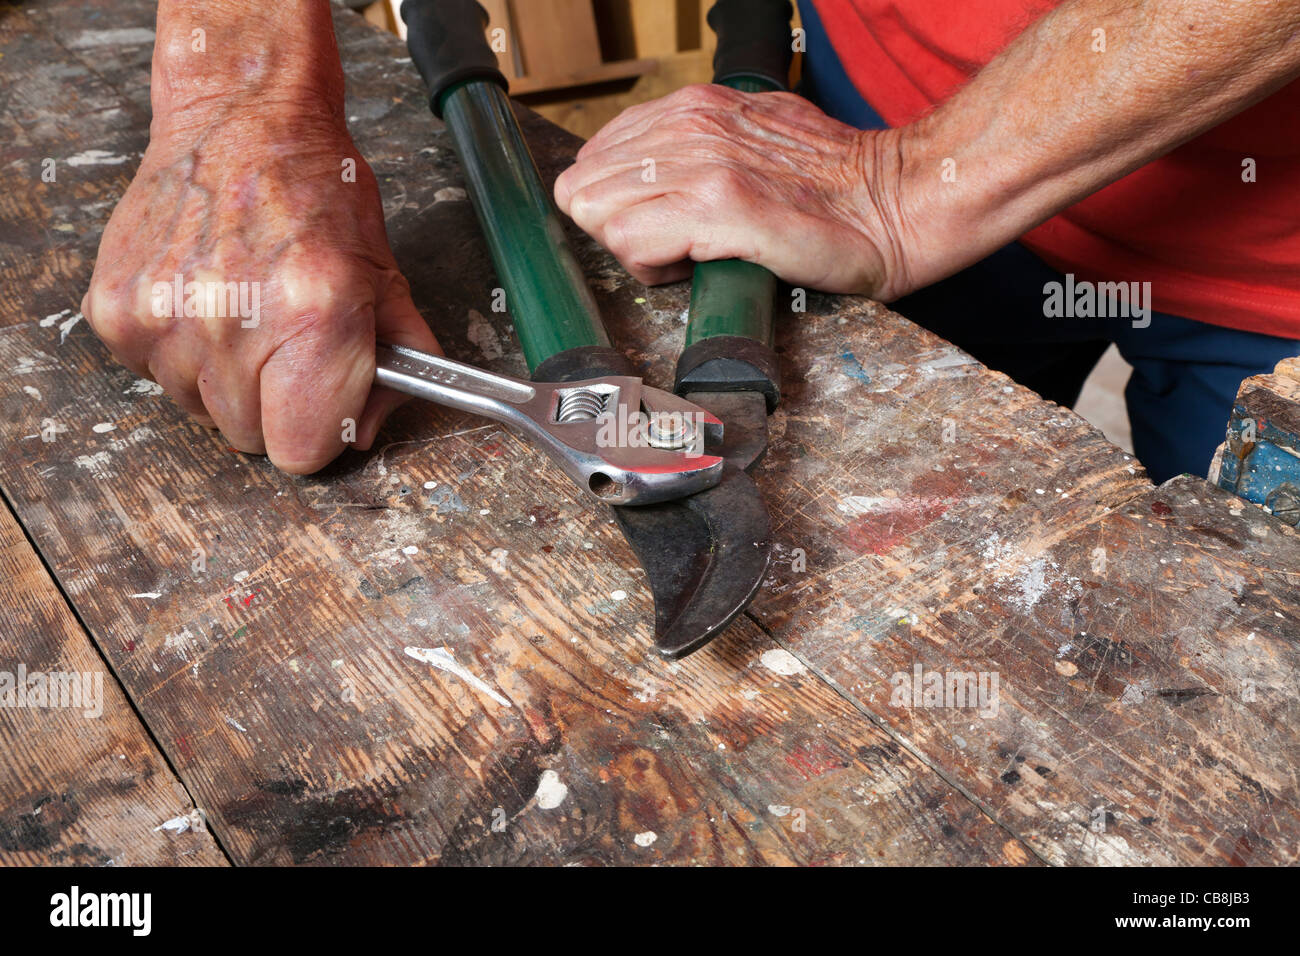 Using adjustable spanner to alter friction on a garden tool - Stock Image